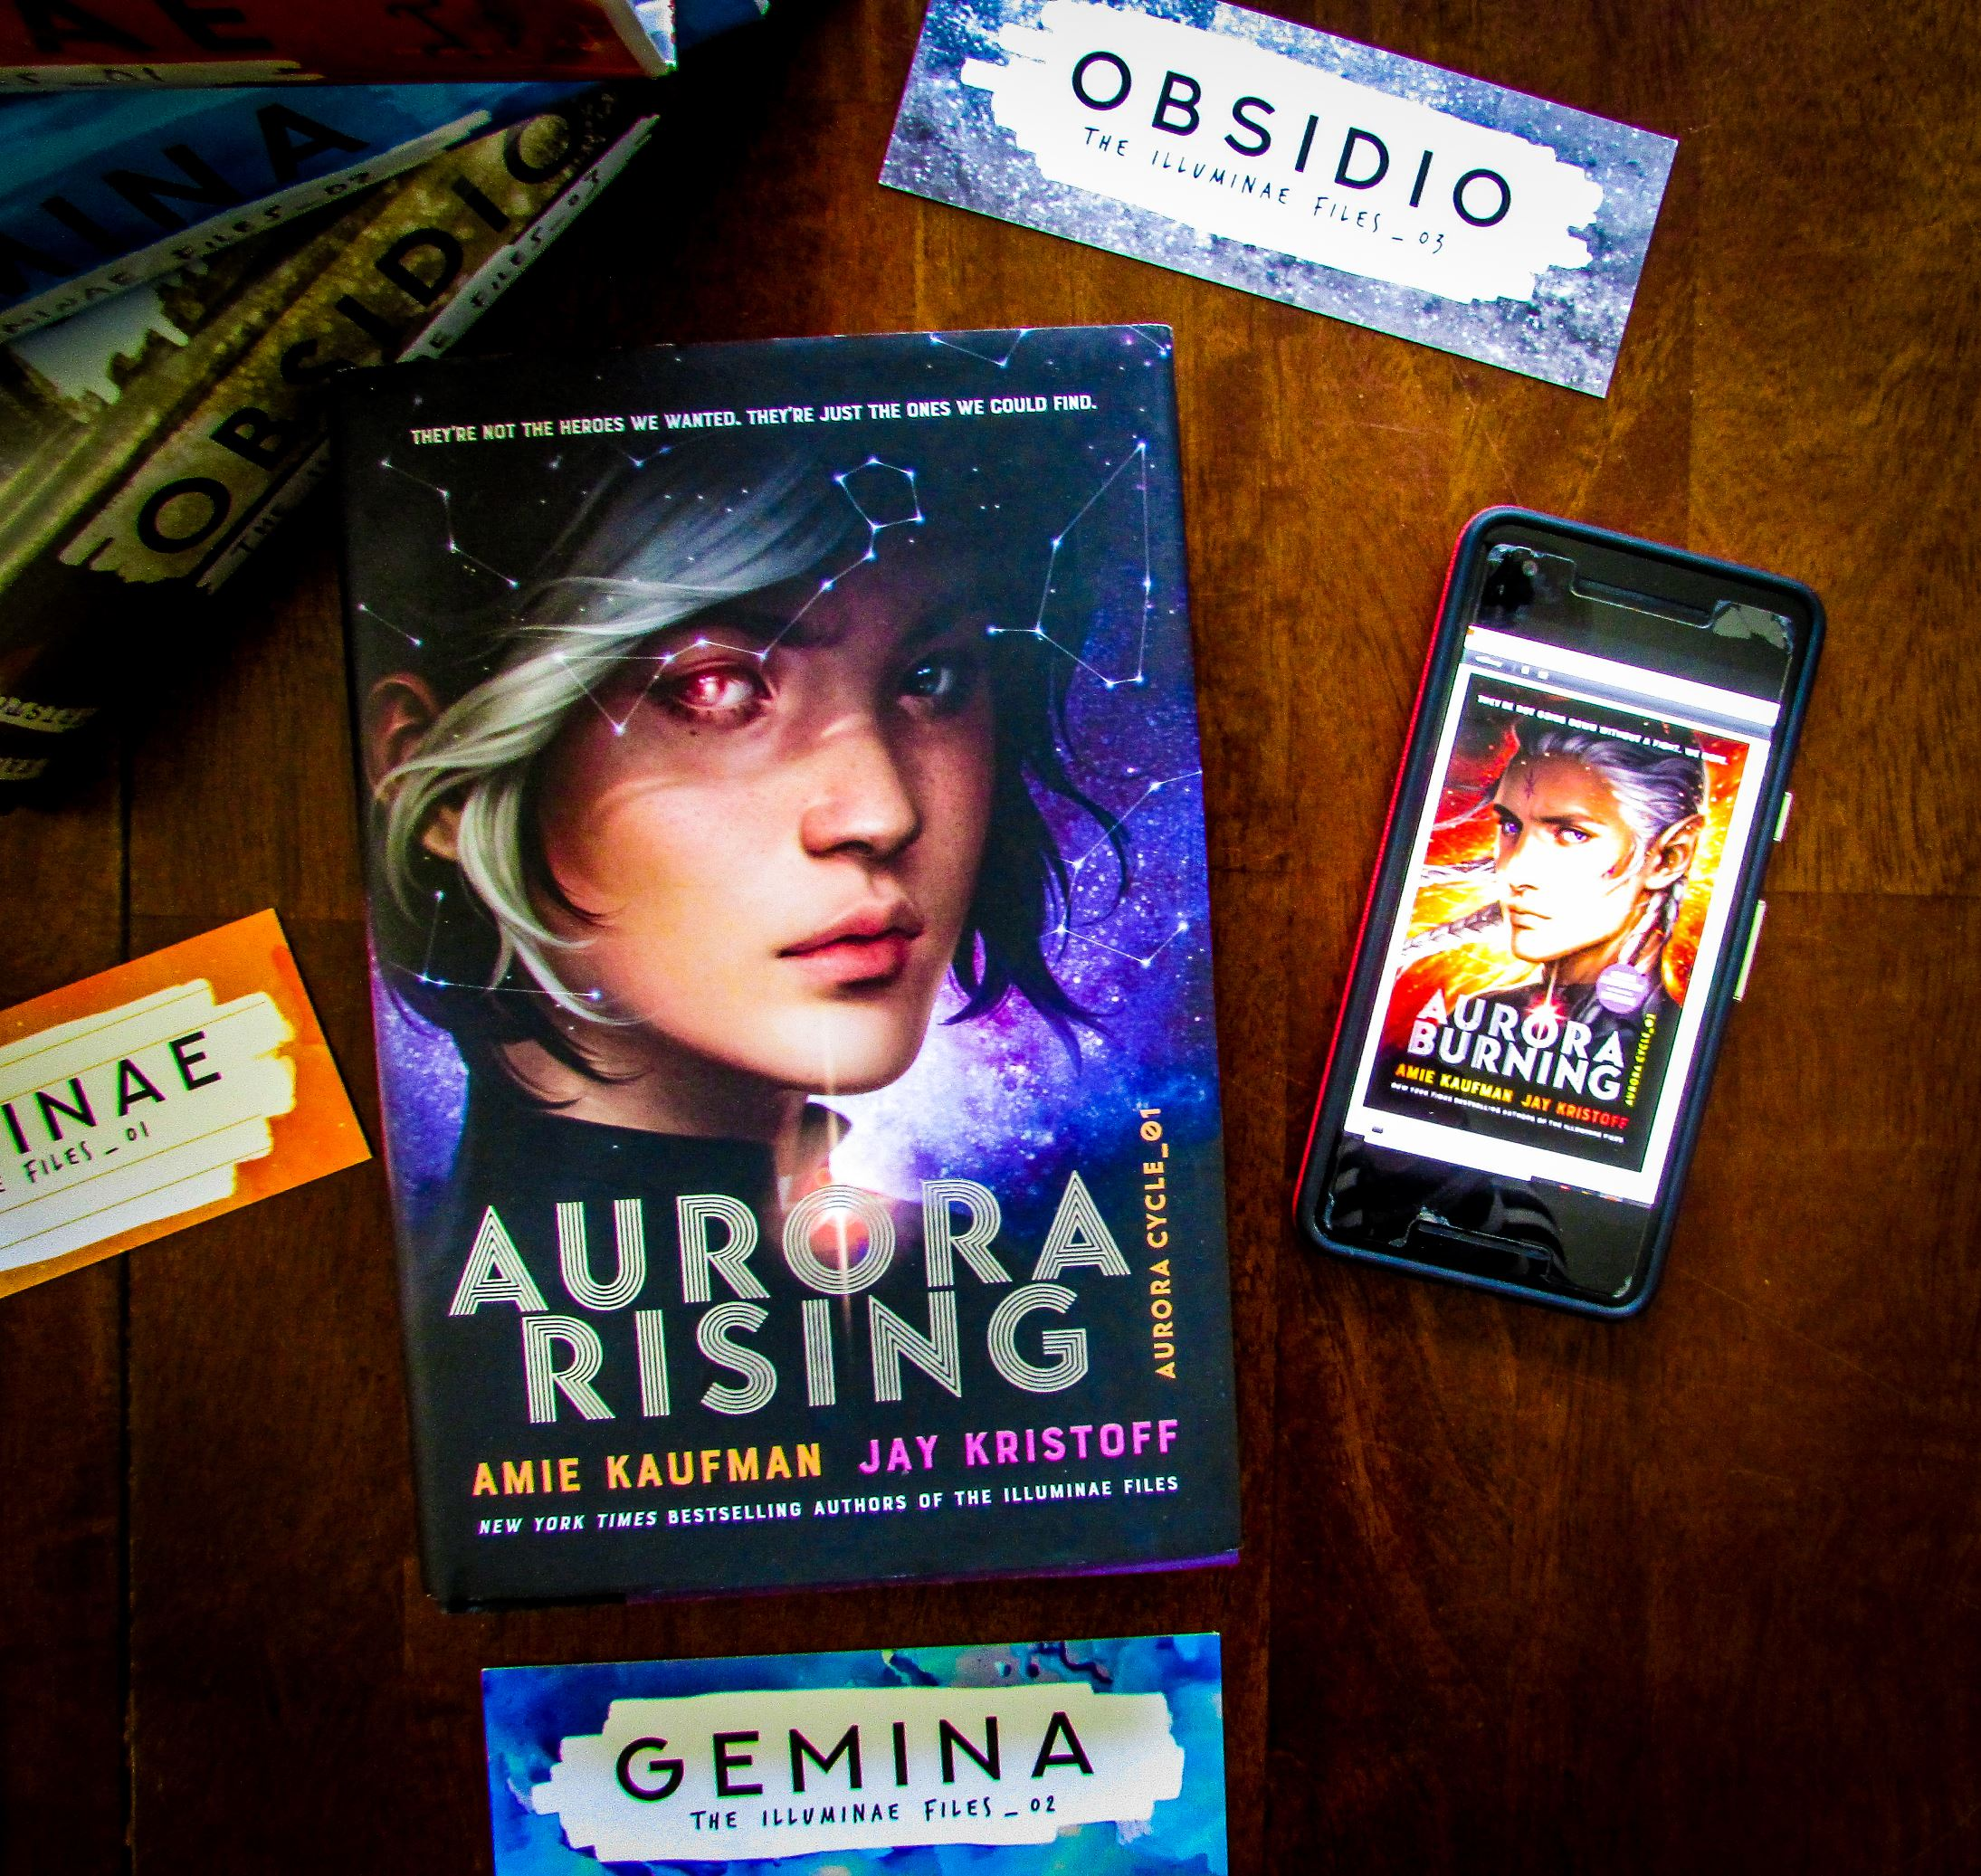 Aurora Burning by Amie Kaufman and Jay Kristoff Advance Readers Copy (ARC)